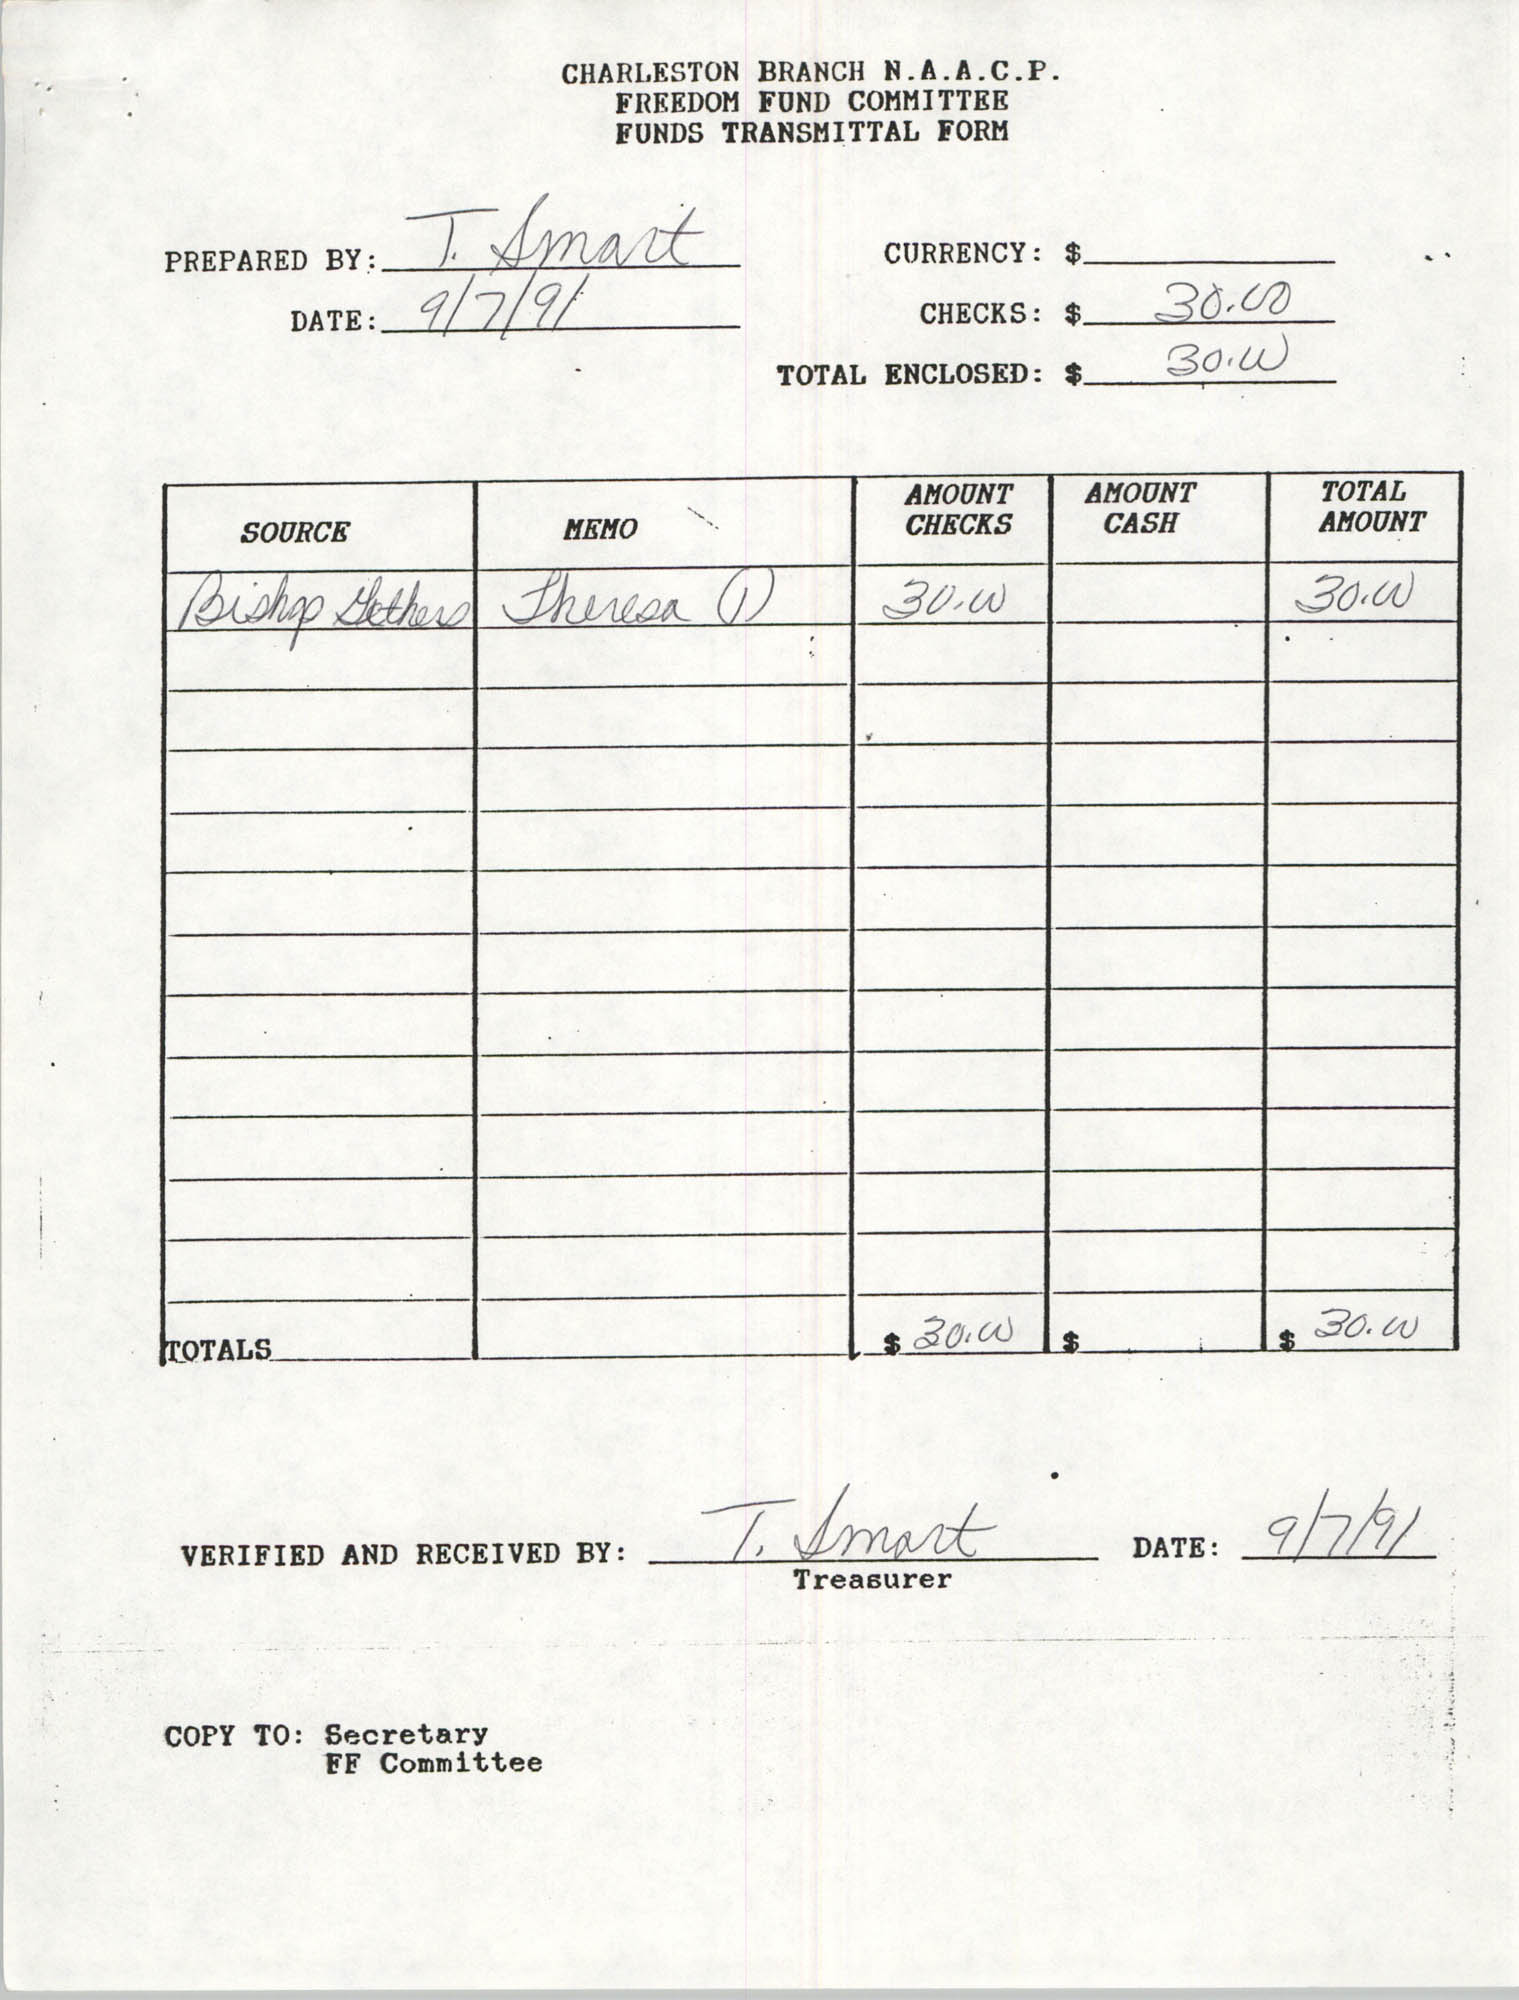 Charleston Branch of the NAACP Funds Transmittal Forms, September 1991, Page 25